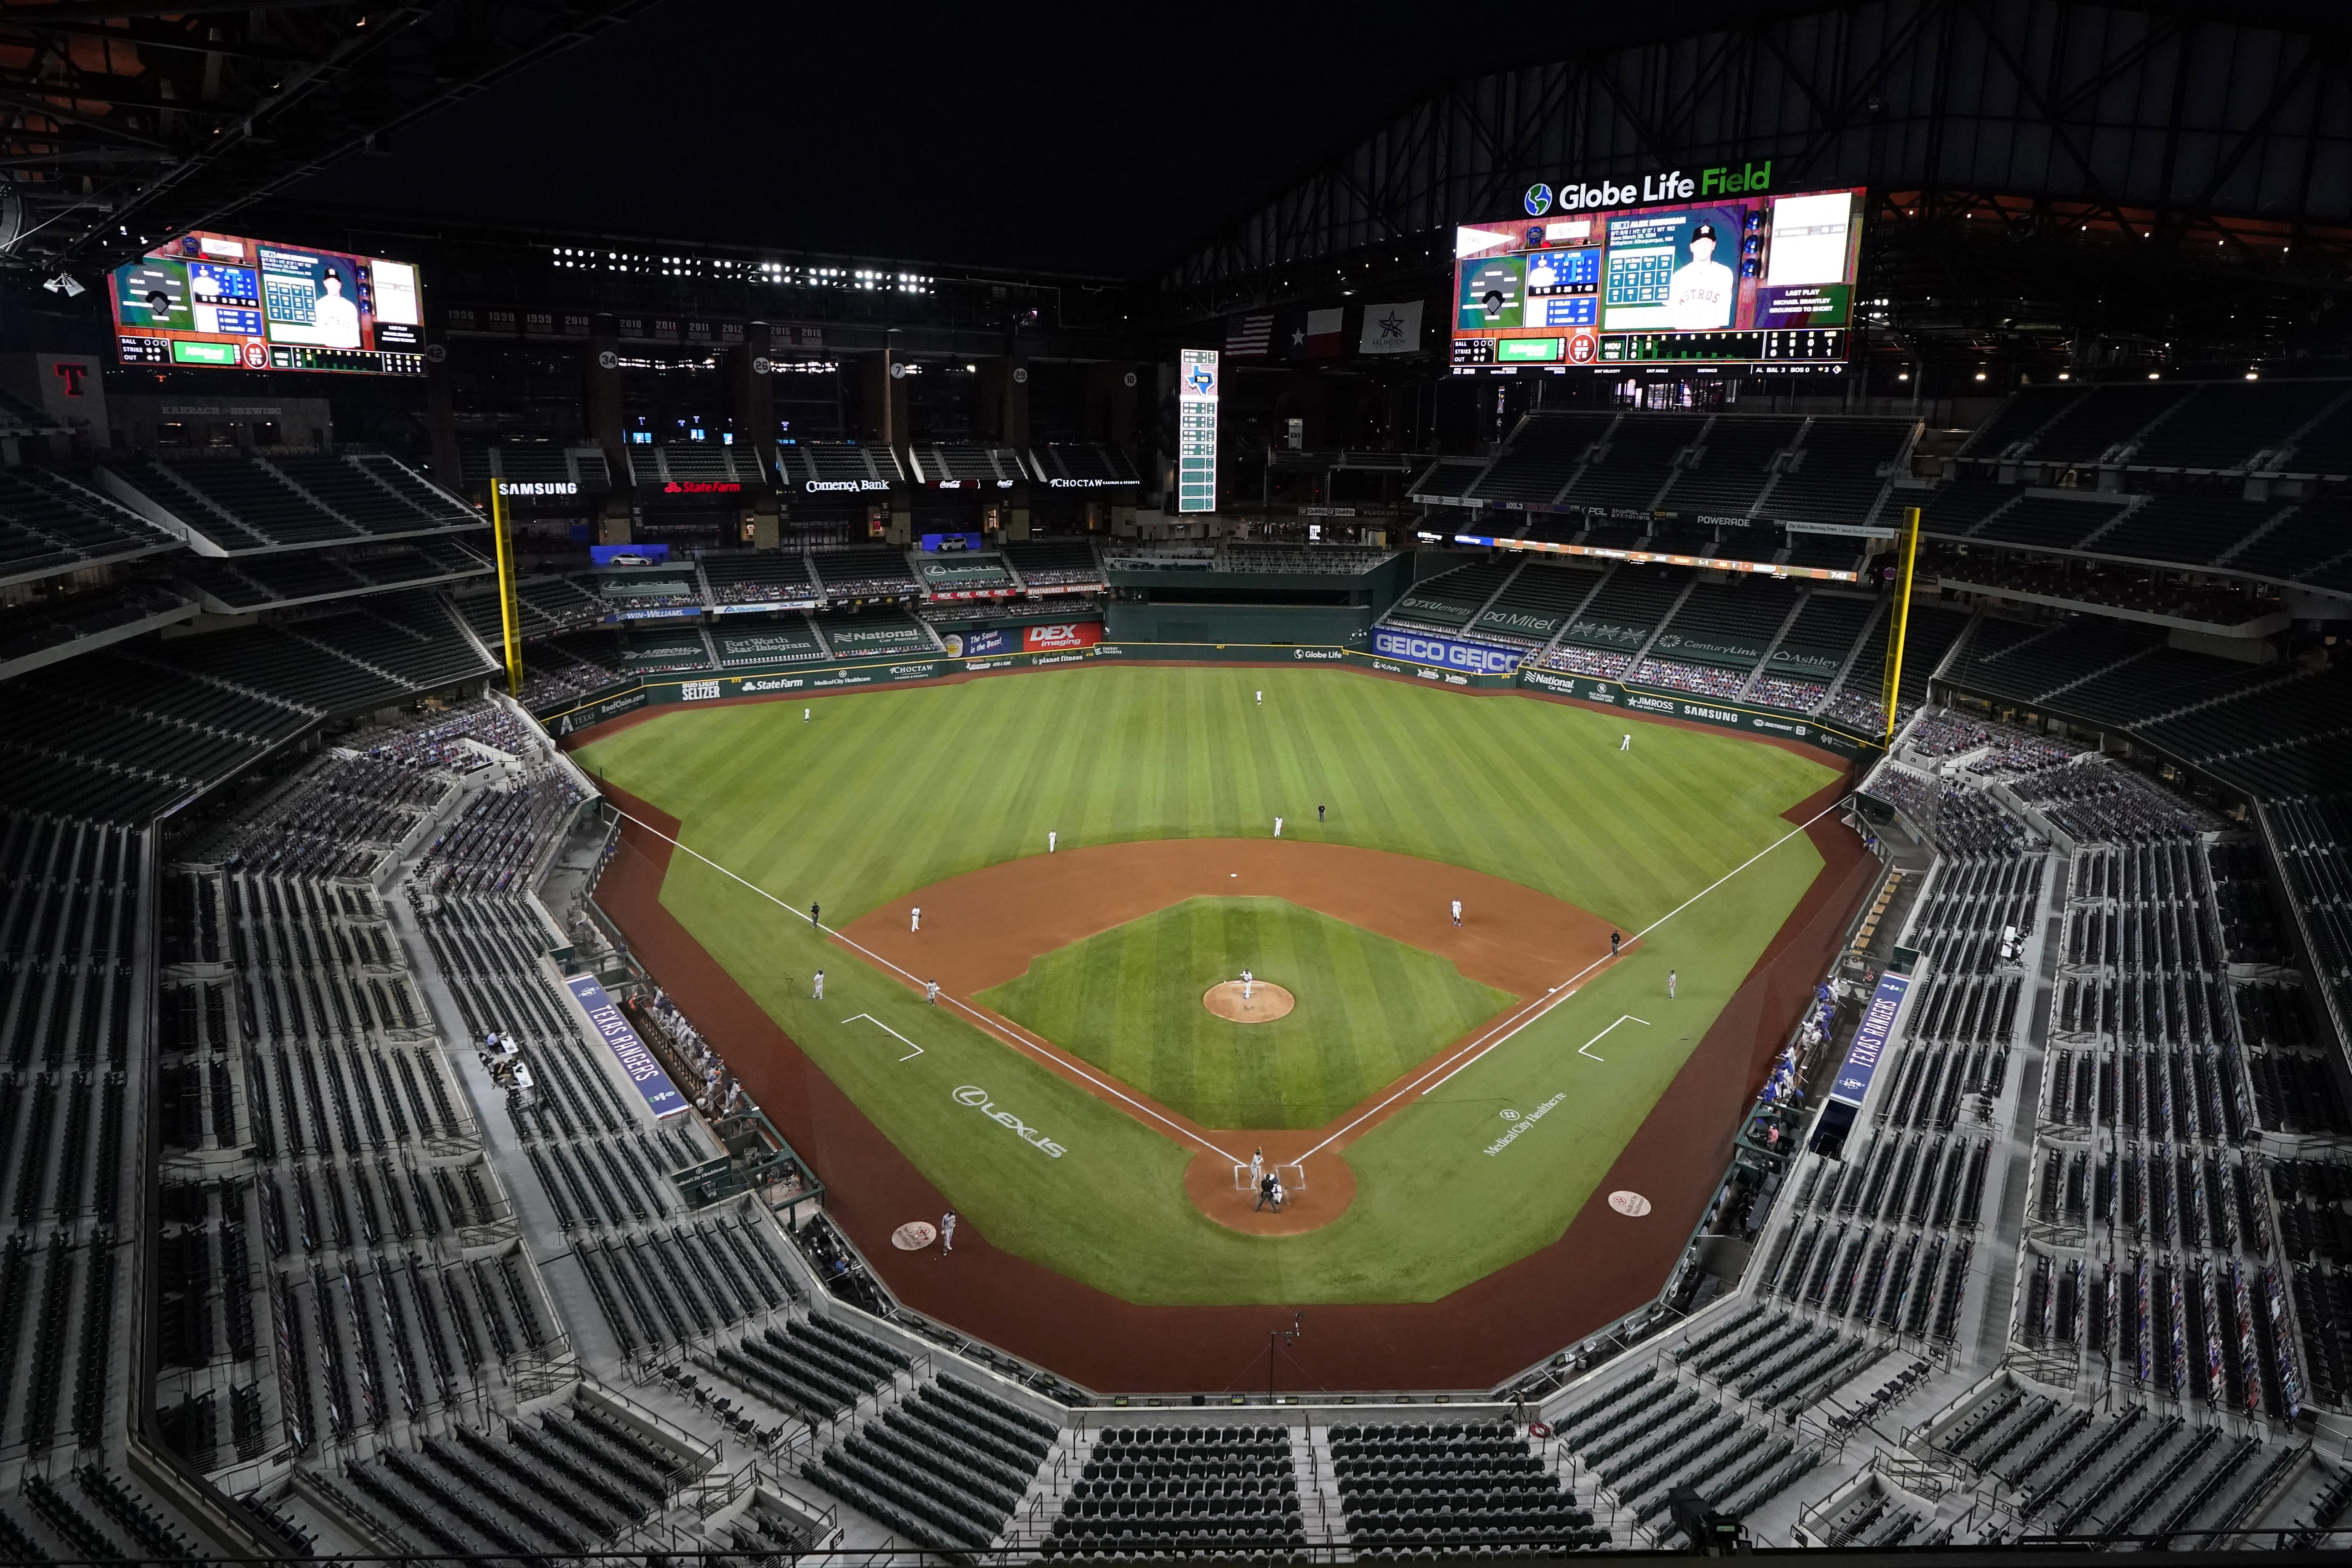 The Houston Astros play the Texas Rangers in the second inning of a baseball game at Globe Life Field in Arlington, Texas, Thursday, Sept. 24, 2020. (AP Photo/Tony Gutierrez)